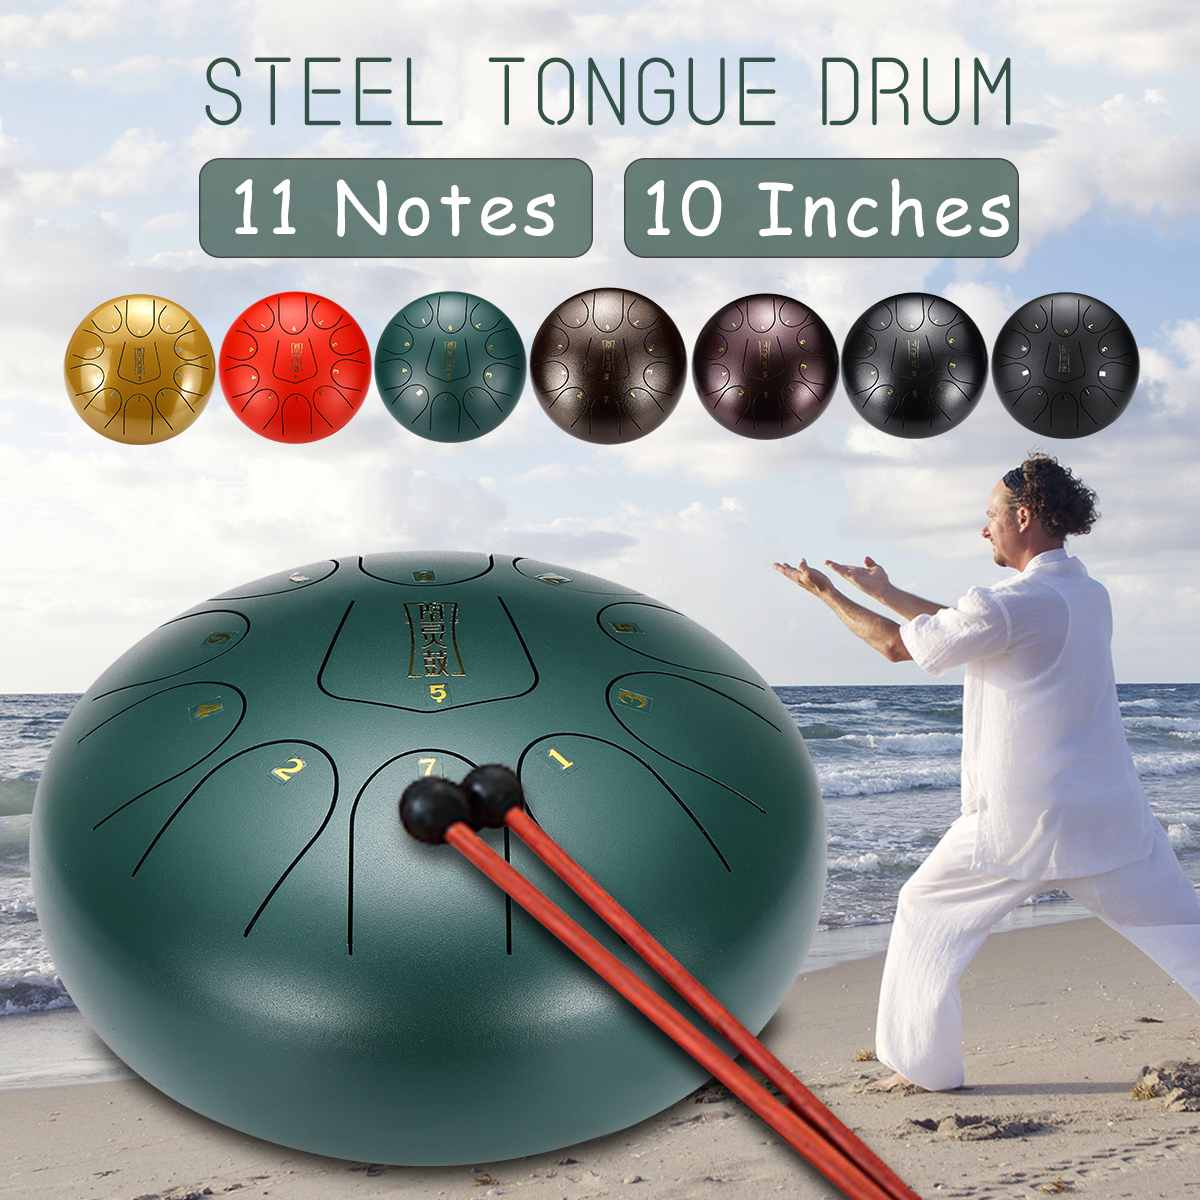 10 Inch 11 Note Steel Tongue Drum Hand Pan Hand Tankdrum with Drumstick Percussion Musical Instrument Yoga Meditation Relax